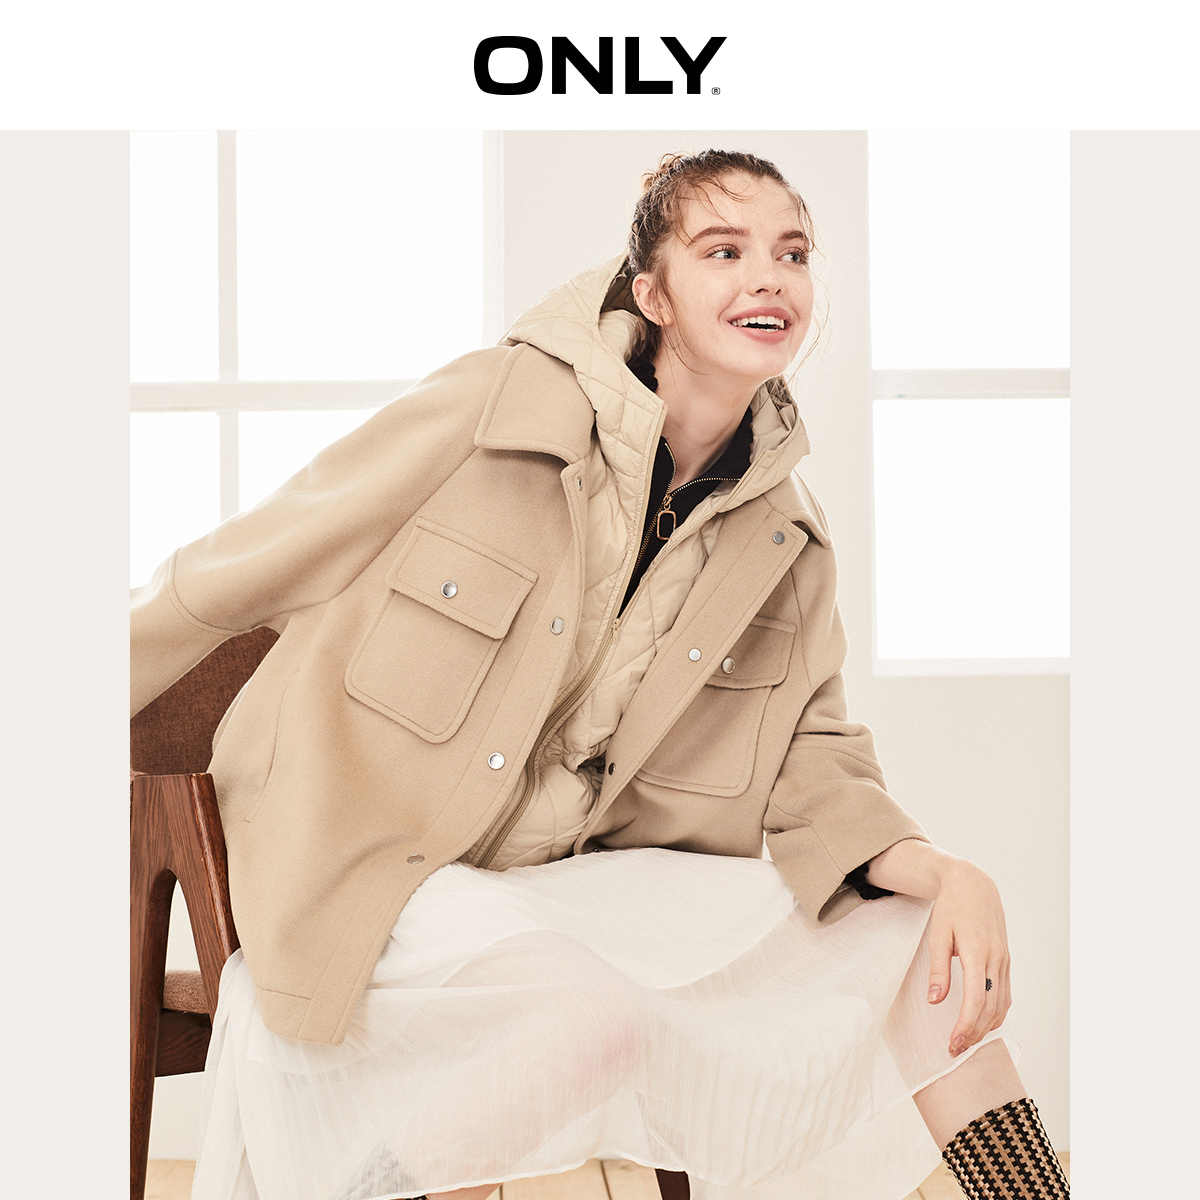 ONLY 2019 Autumn Winter Women's Two-piece Woolen Coat | 11934T507